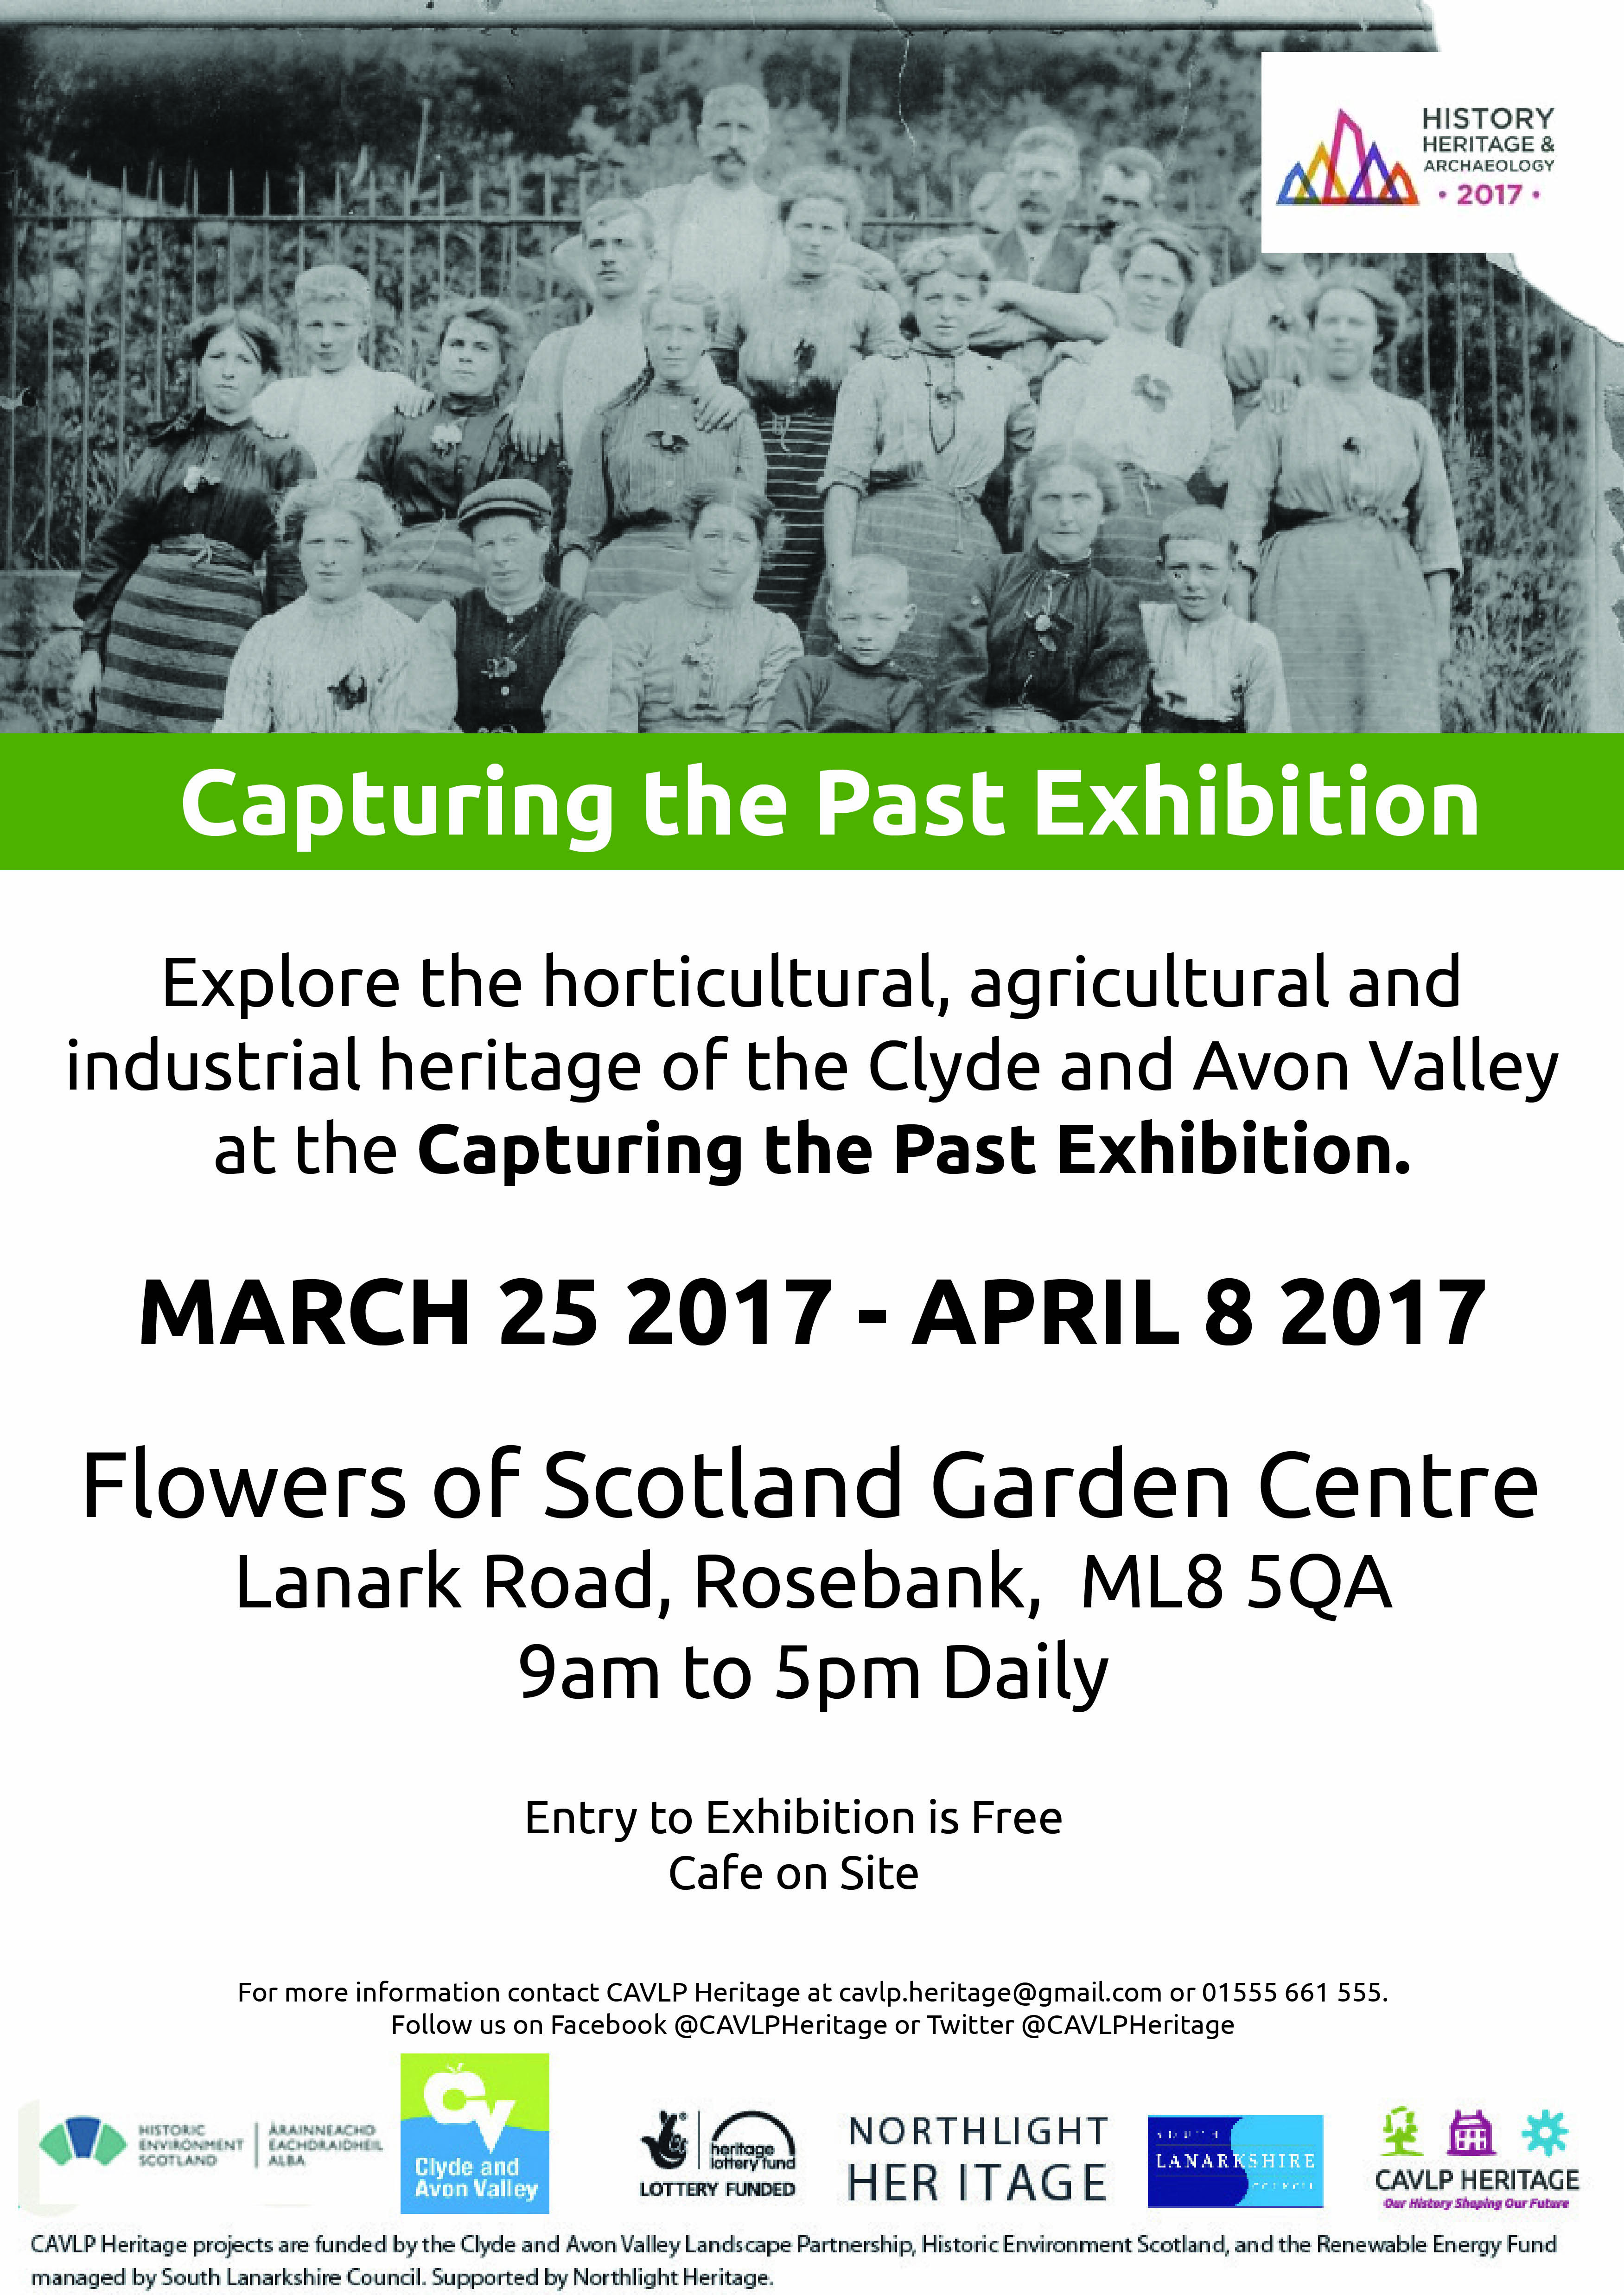 Capturing the Past Exhibition, Rosebank, Saturday 25 March - Saturday 8 April 2017